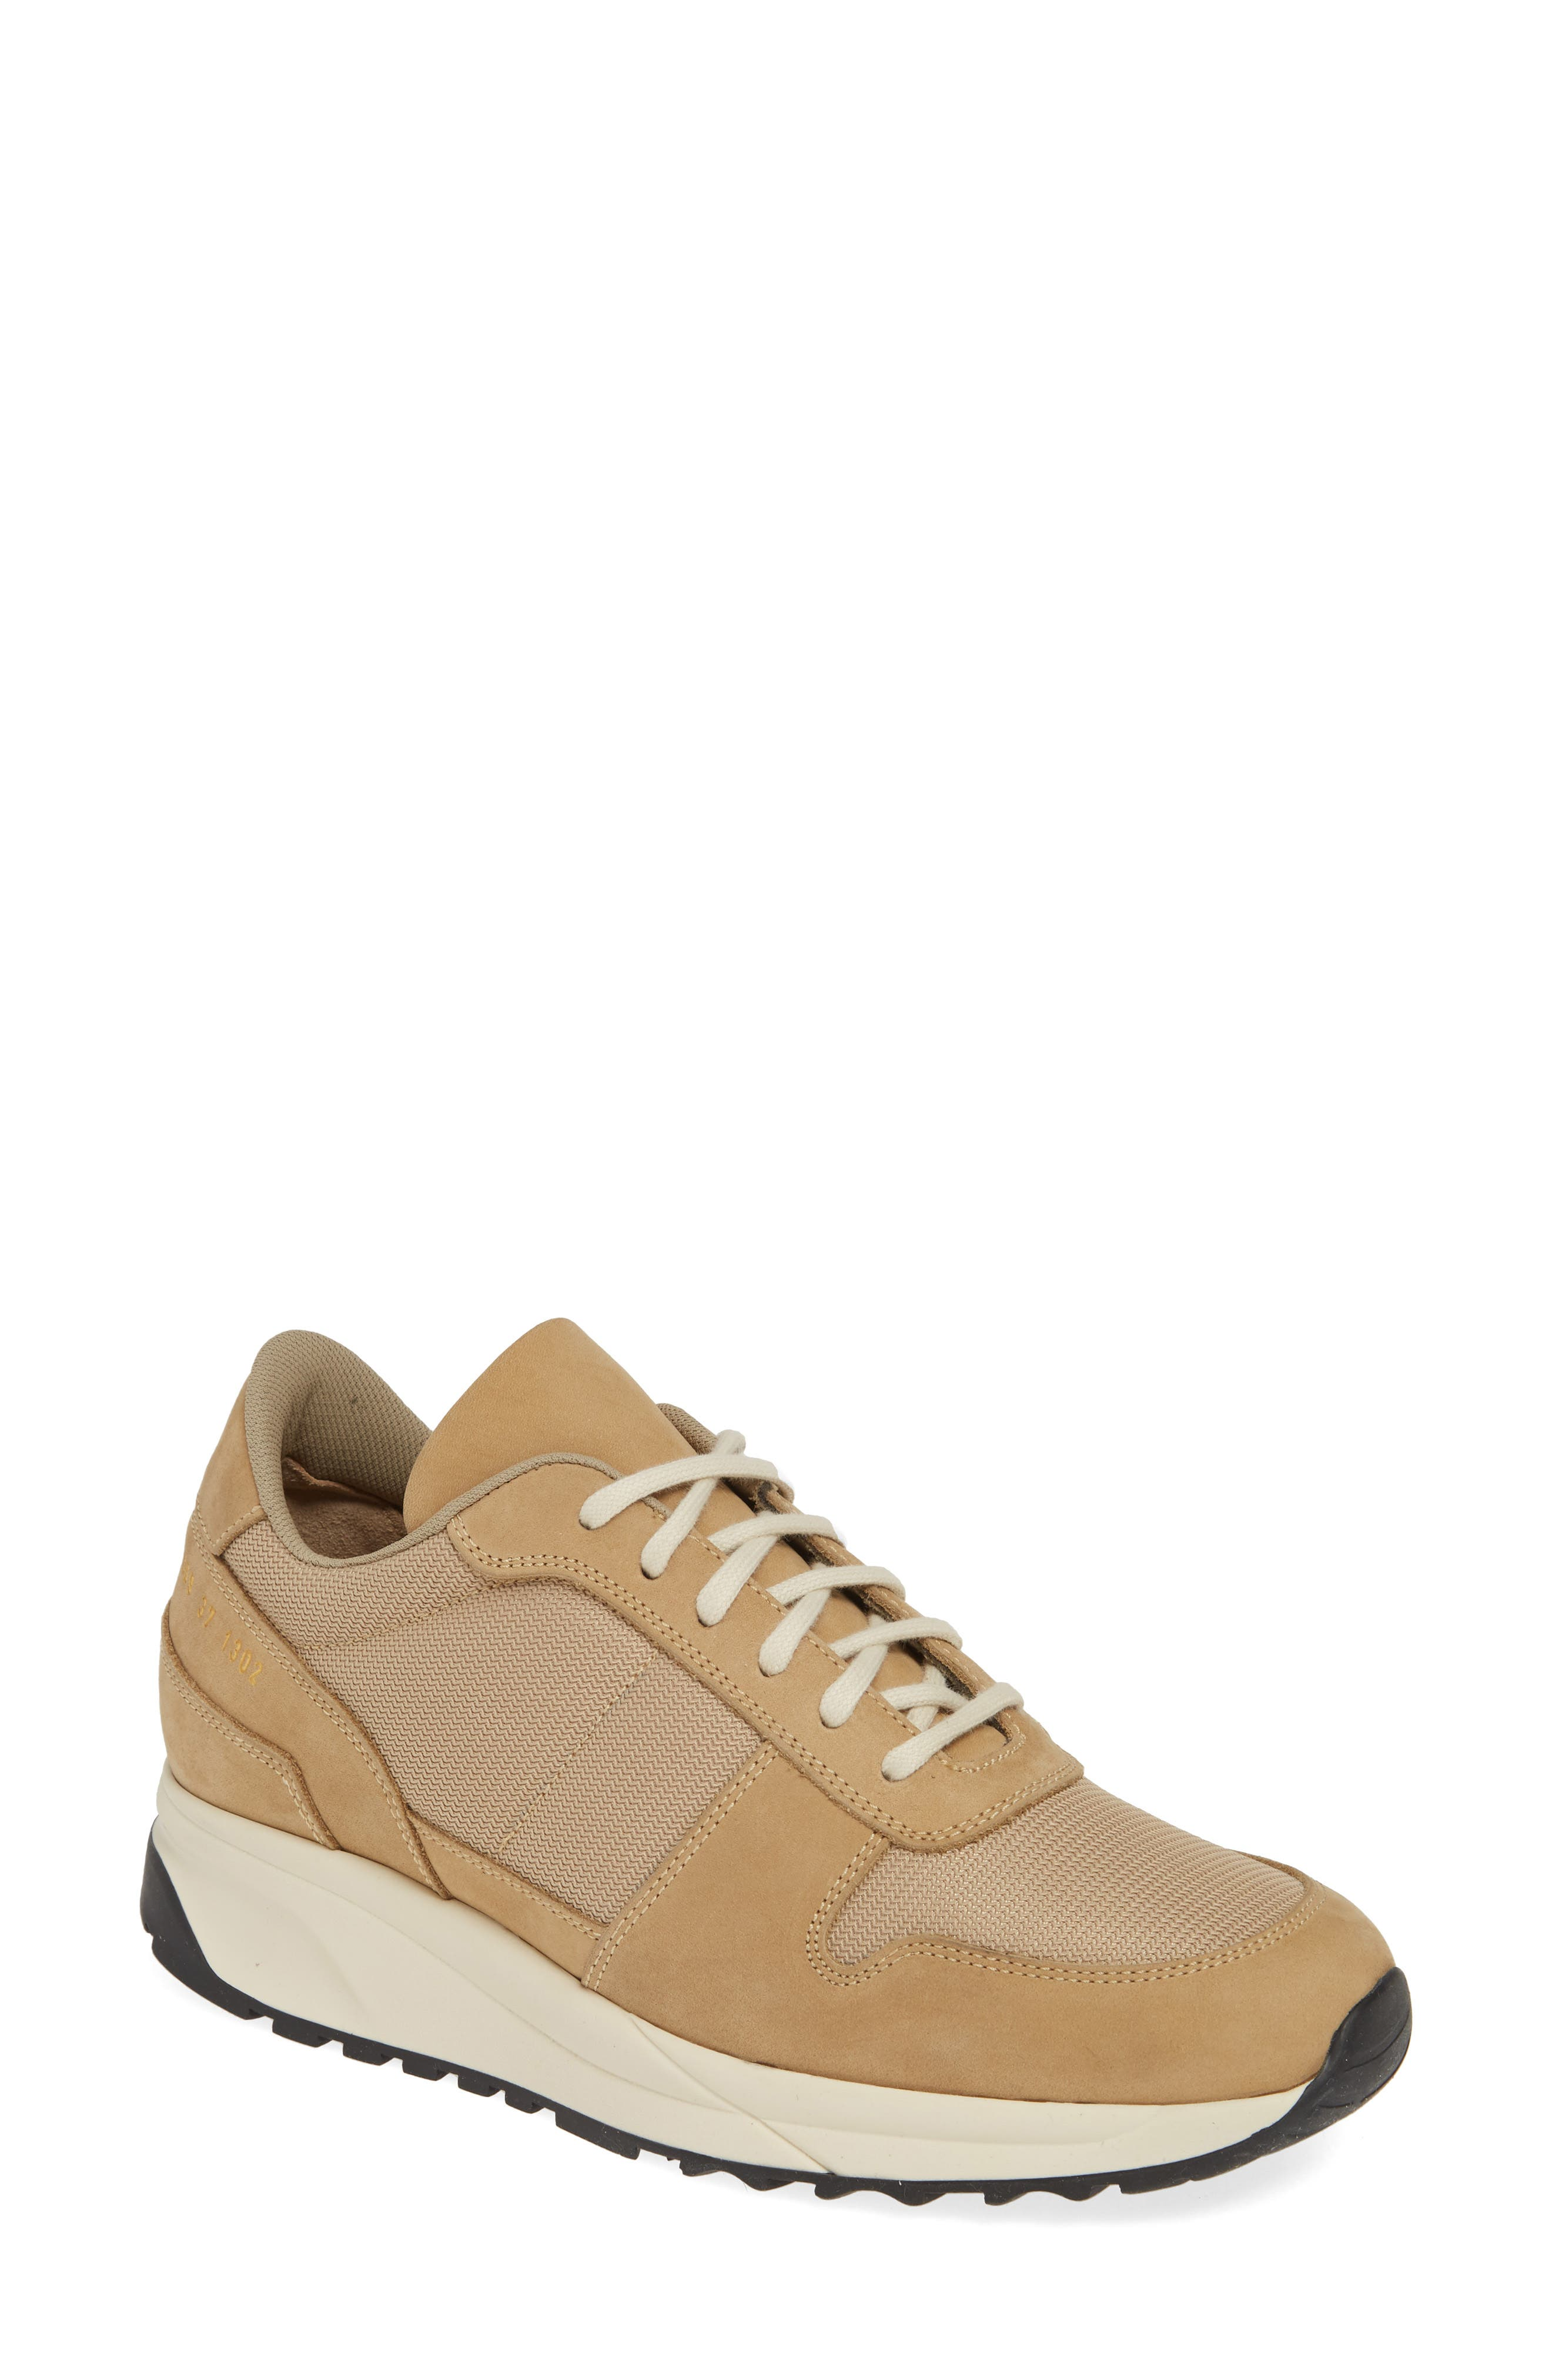 COMMON PROJECTS, Track Vintage Sneaker, Main thumbnail 1, color, TAN